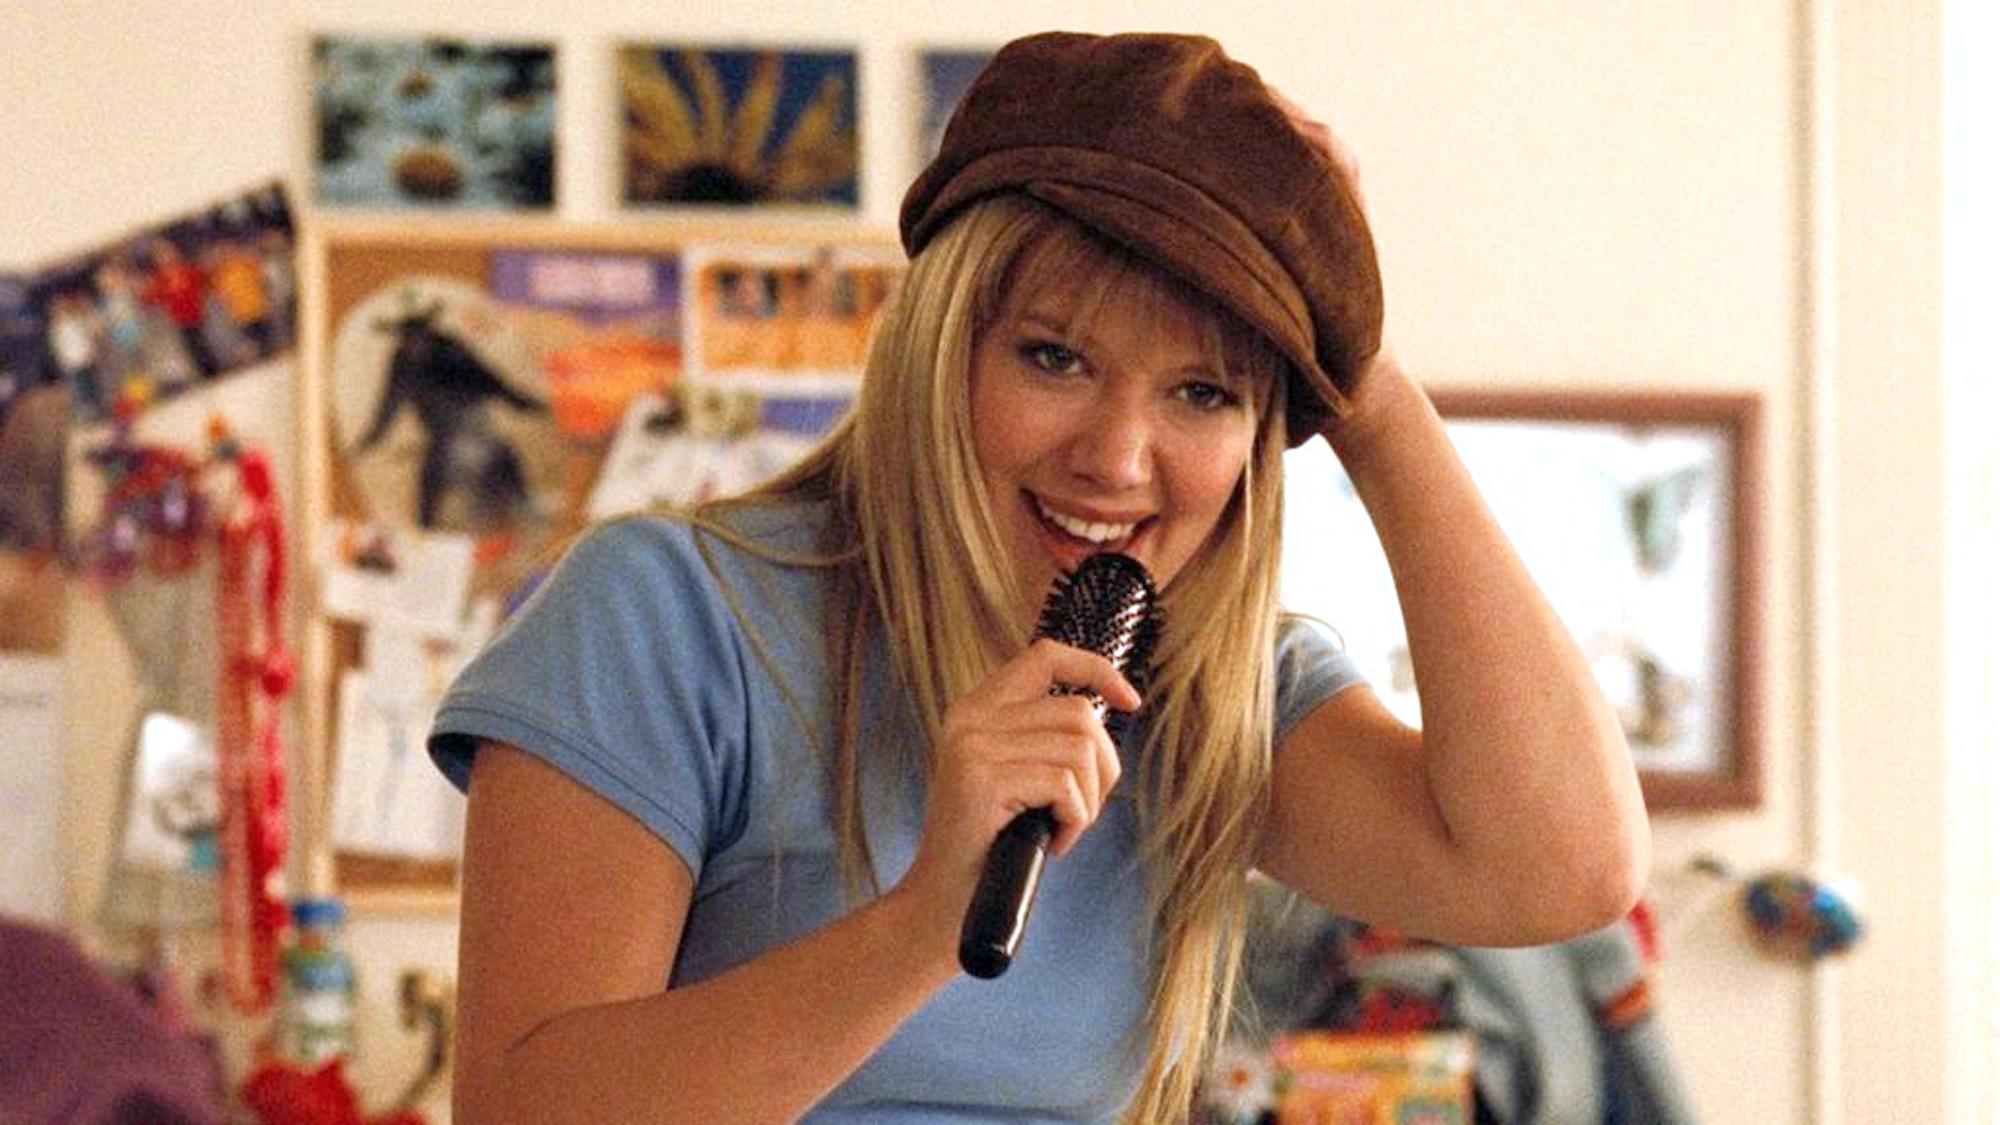 Lizzie McGuire Movie, singing, embarassing, Hilary Duff, teenager